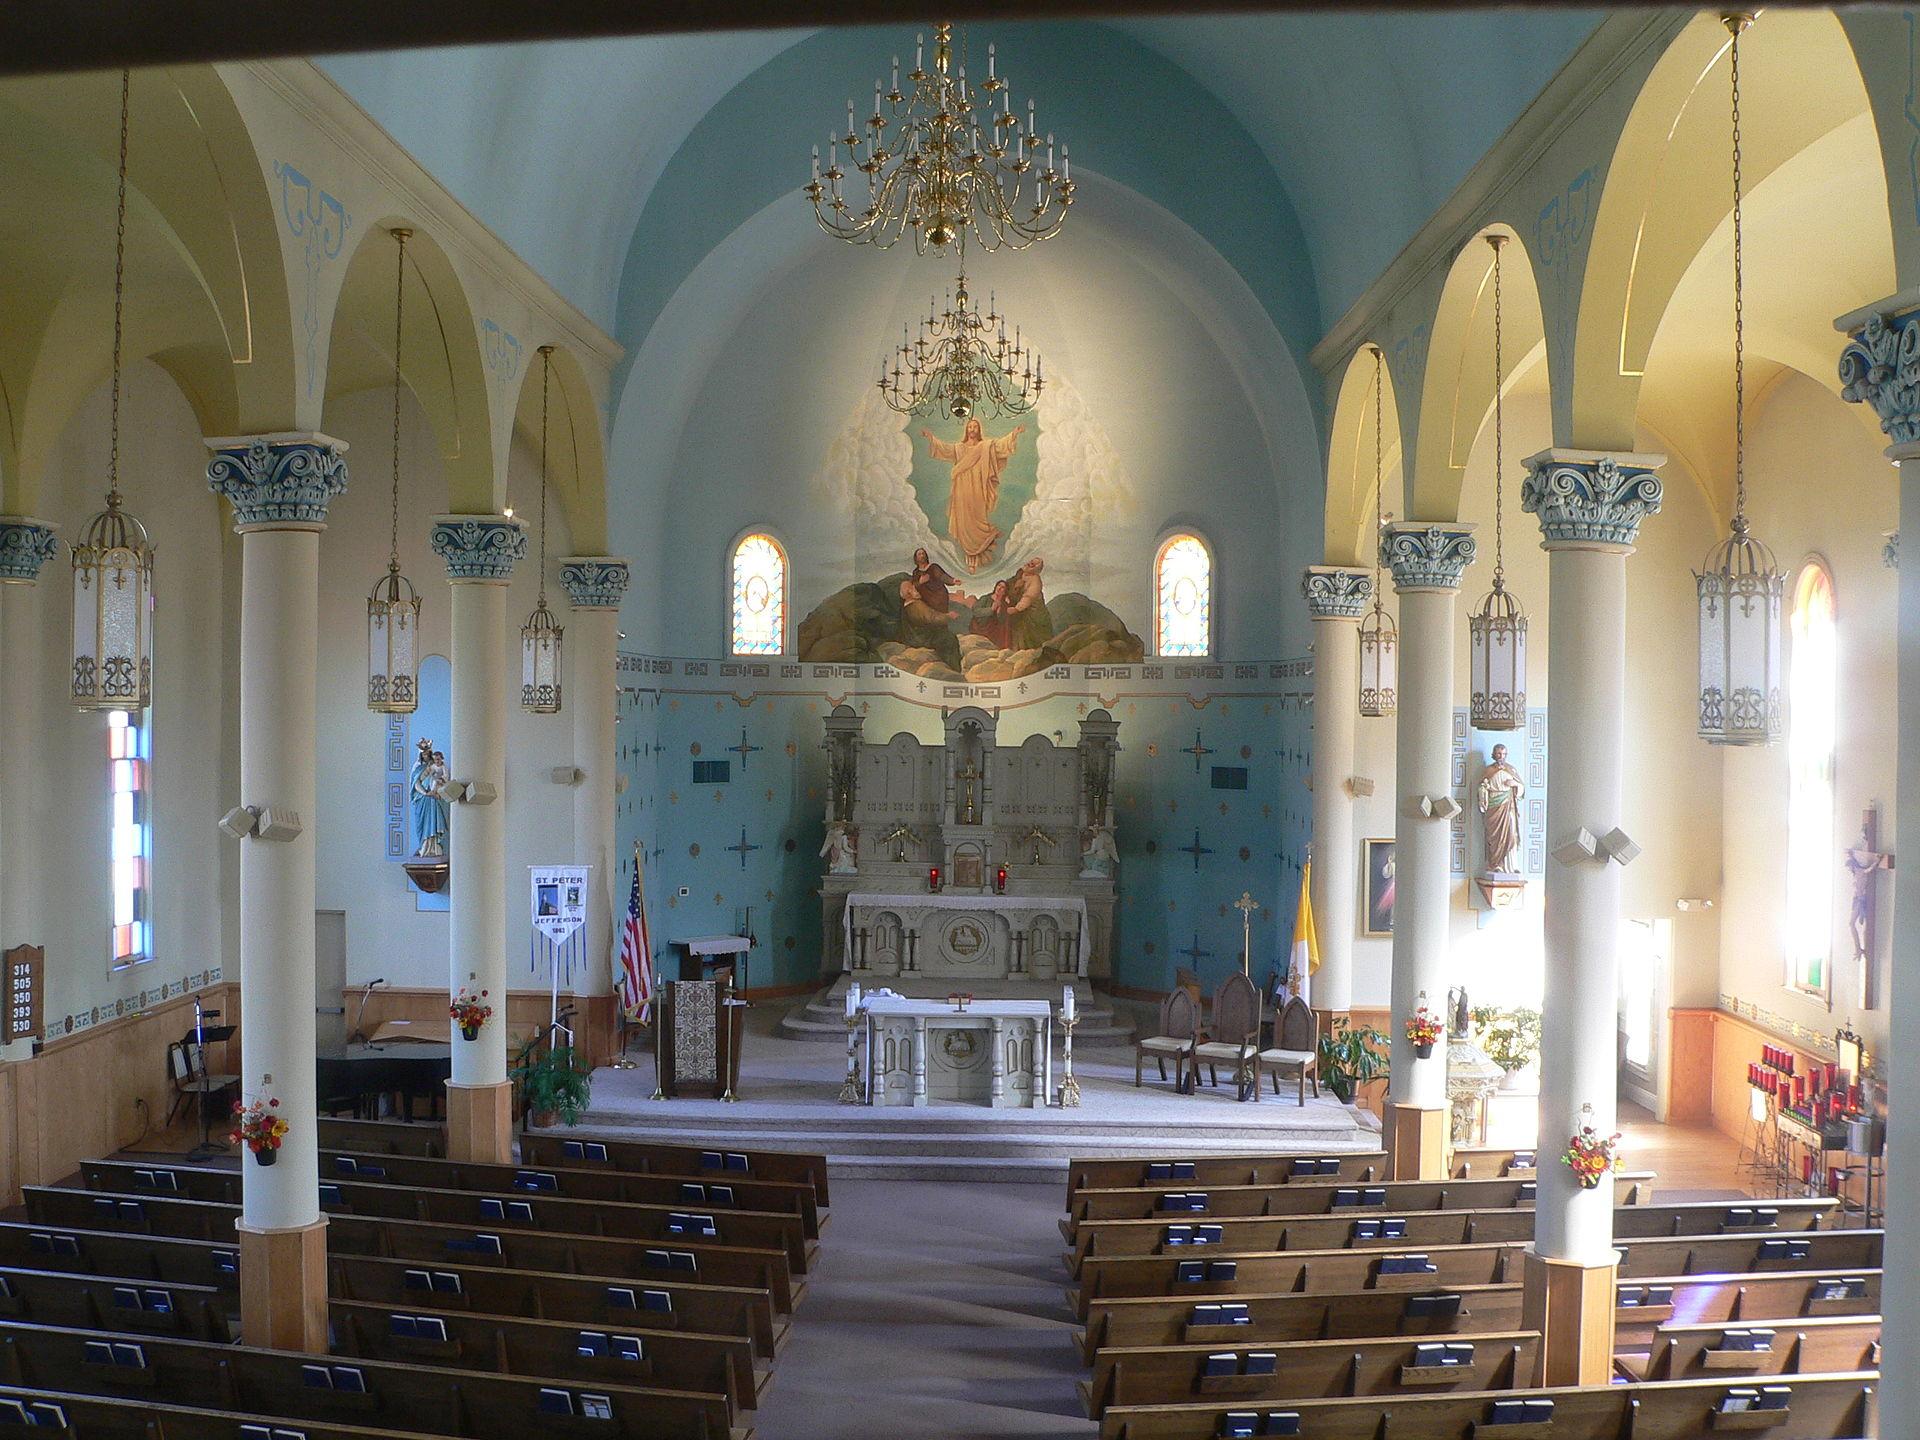 View inside the church